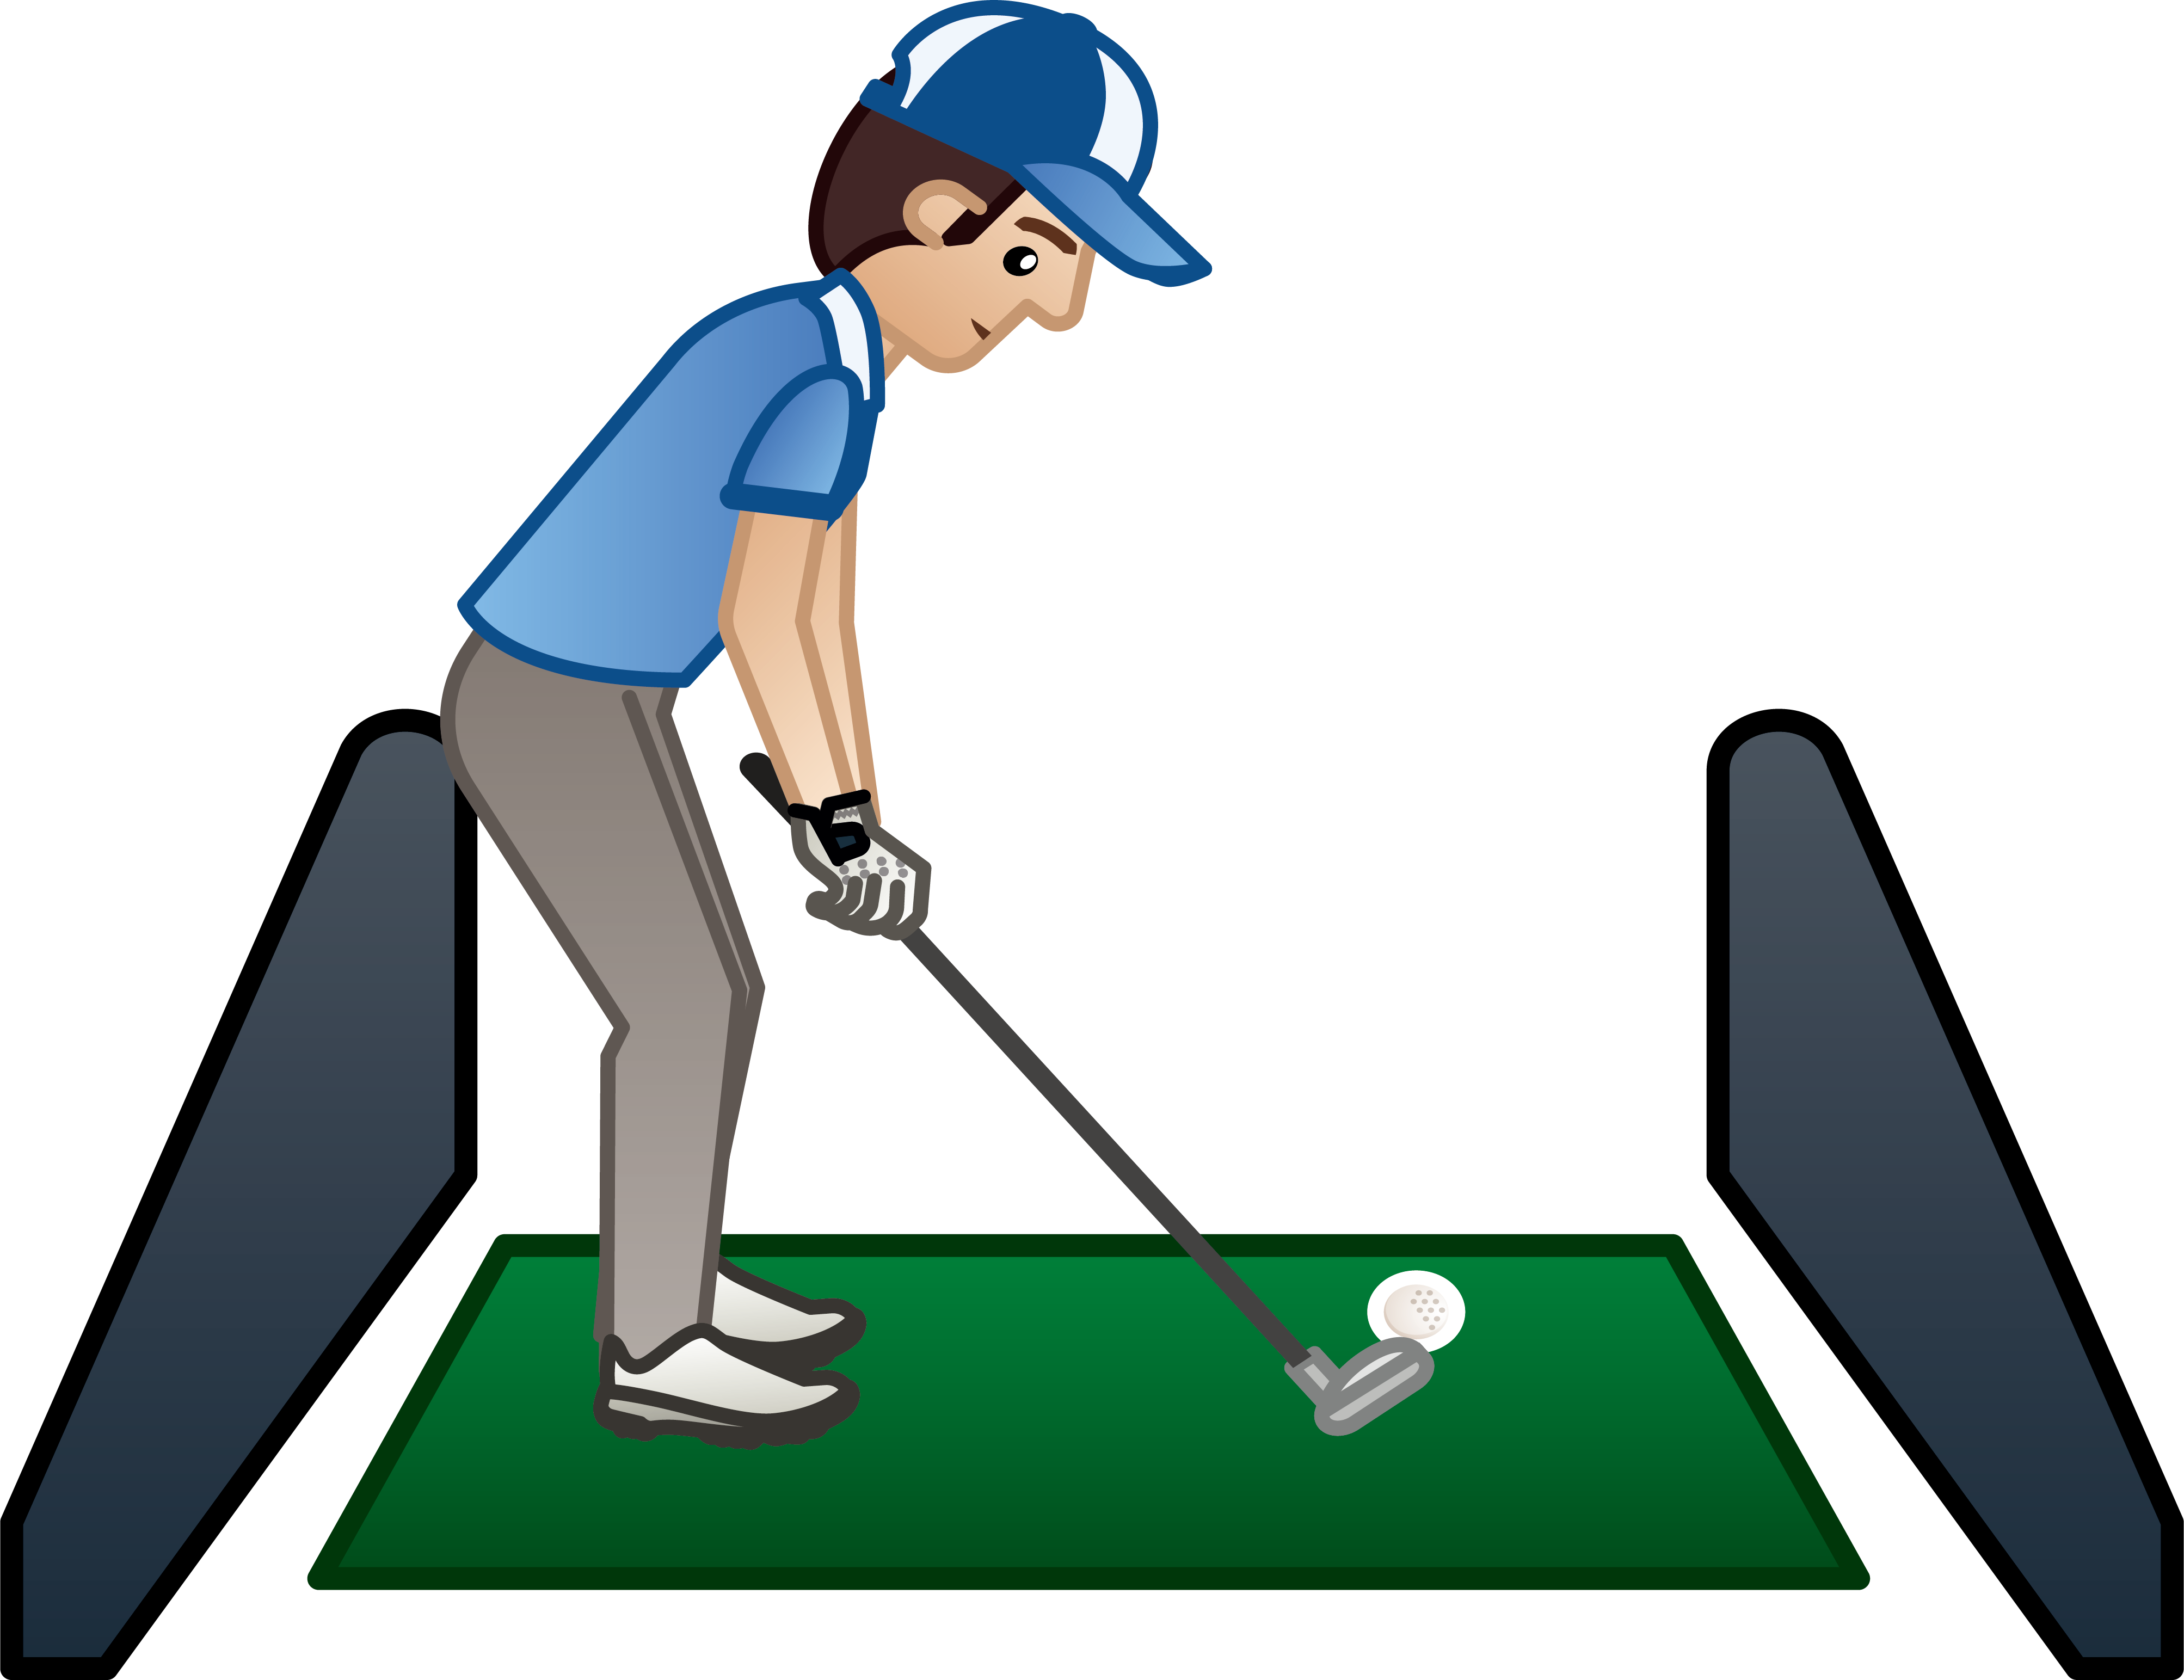 Golf at getdrawings com. Club clipart ball